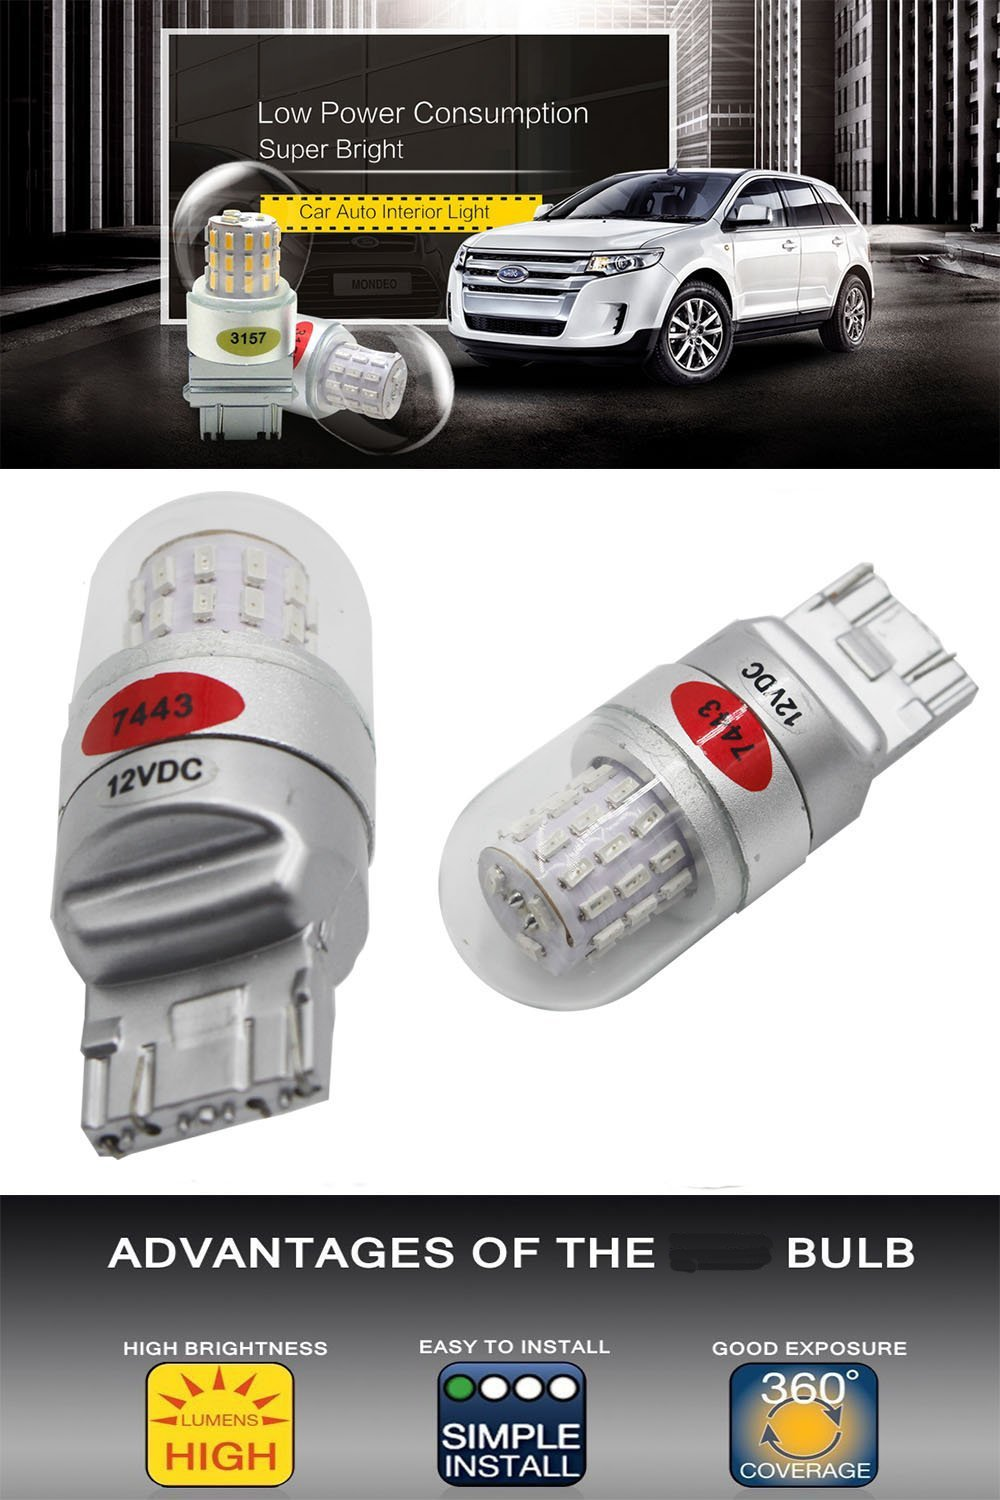 Replacement for Tail Brake Light LED Bulb AMAZENAR 2-Pack 7440 7441 7443 7444 Red 9V-30V Extremely Bright 600 Lumens 3014 144 SMD LED with Projector